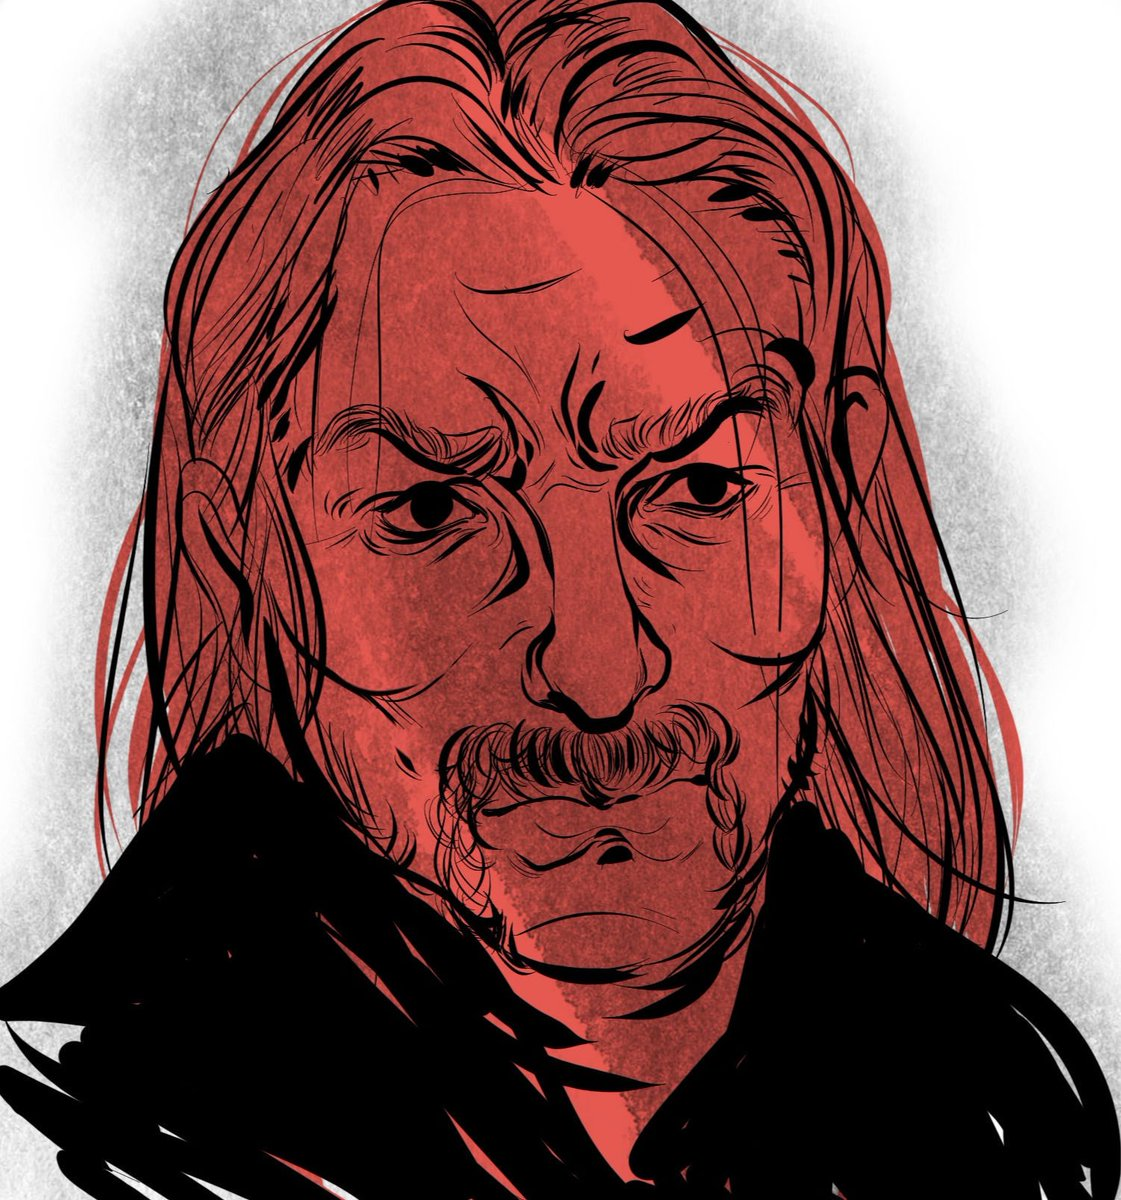 Quick #rdr2 warmup of Micah, who I personally find super creepy but I wanted to draw his mustache so. Here we are. #rdr2fanart #isantheondrawspic.twitter.com/wuitHCwa0g